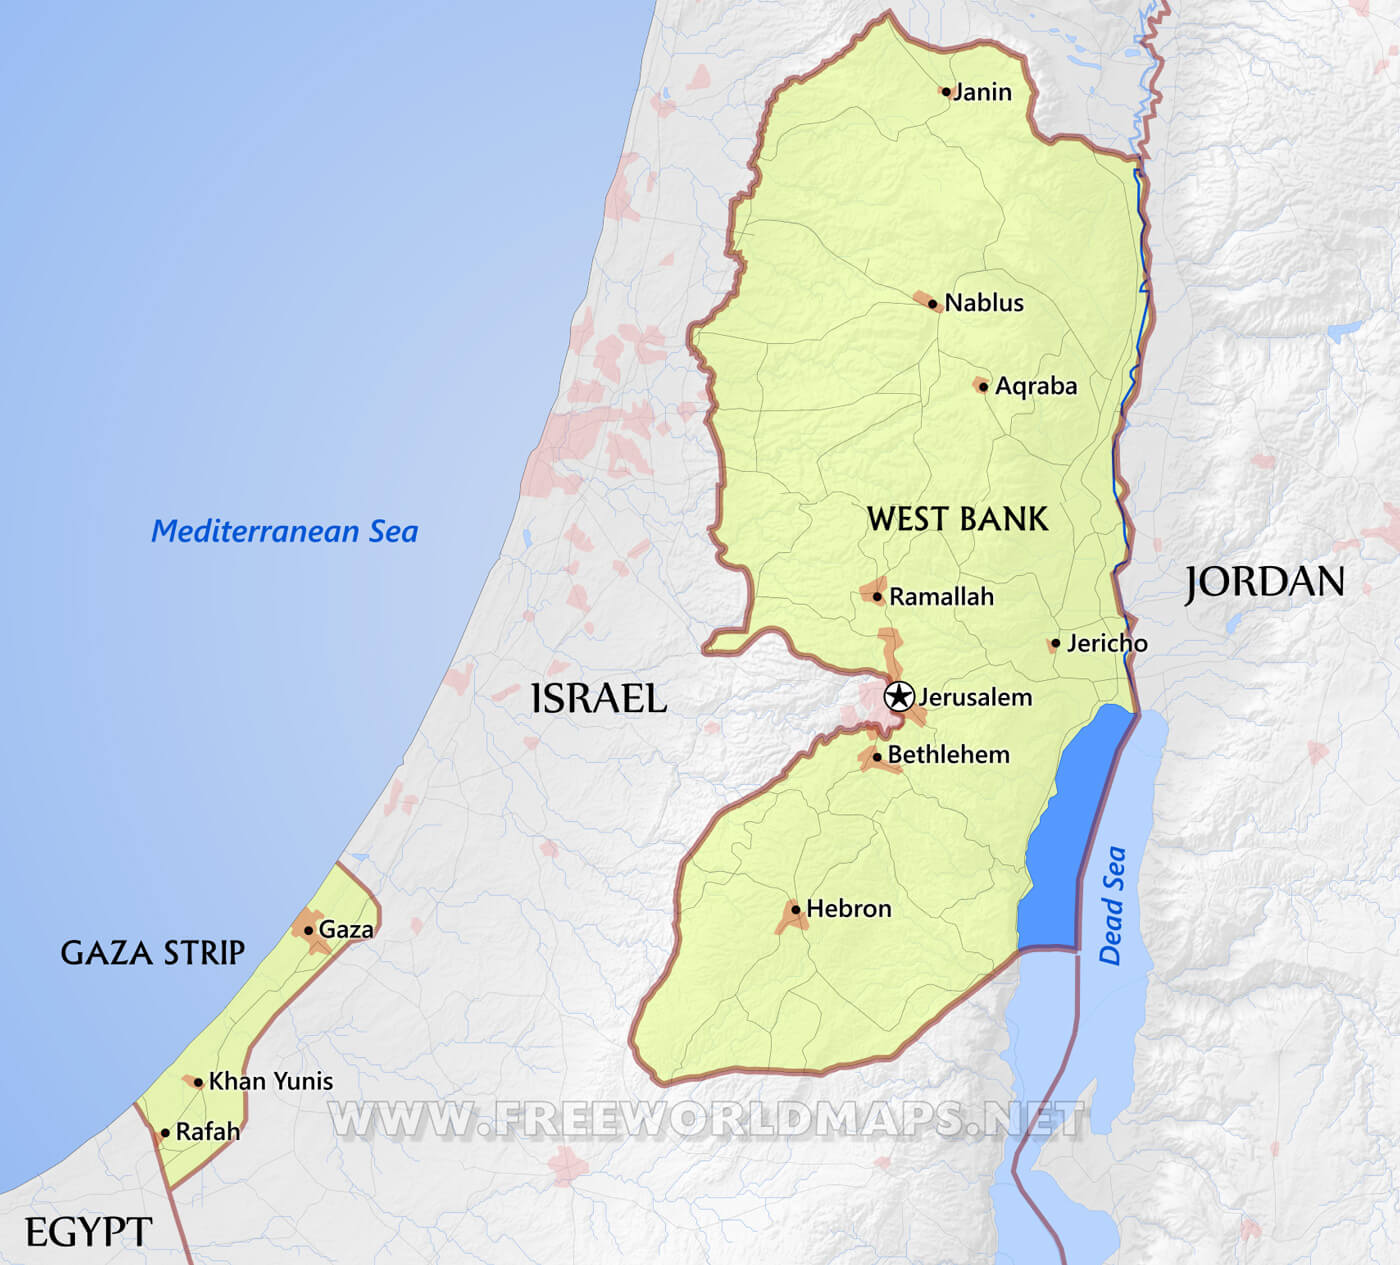 Palestine Maps By Freeworldmaps Net